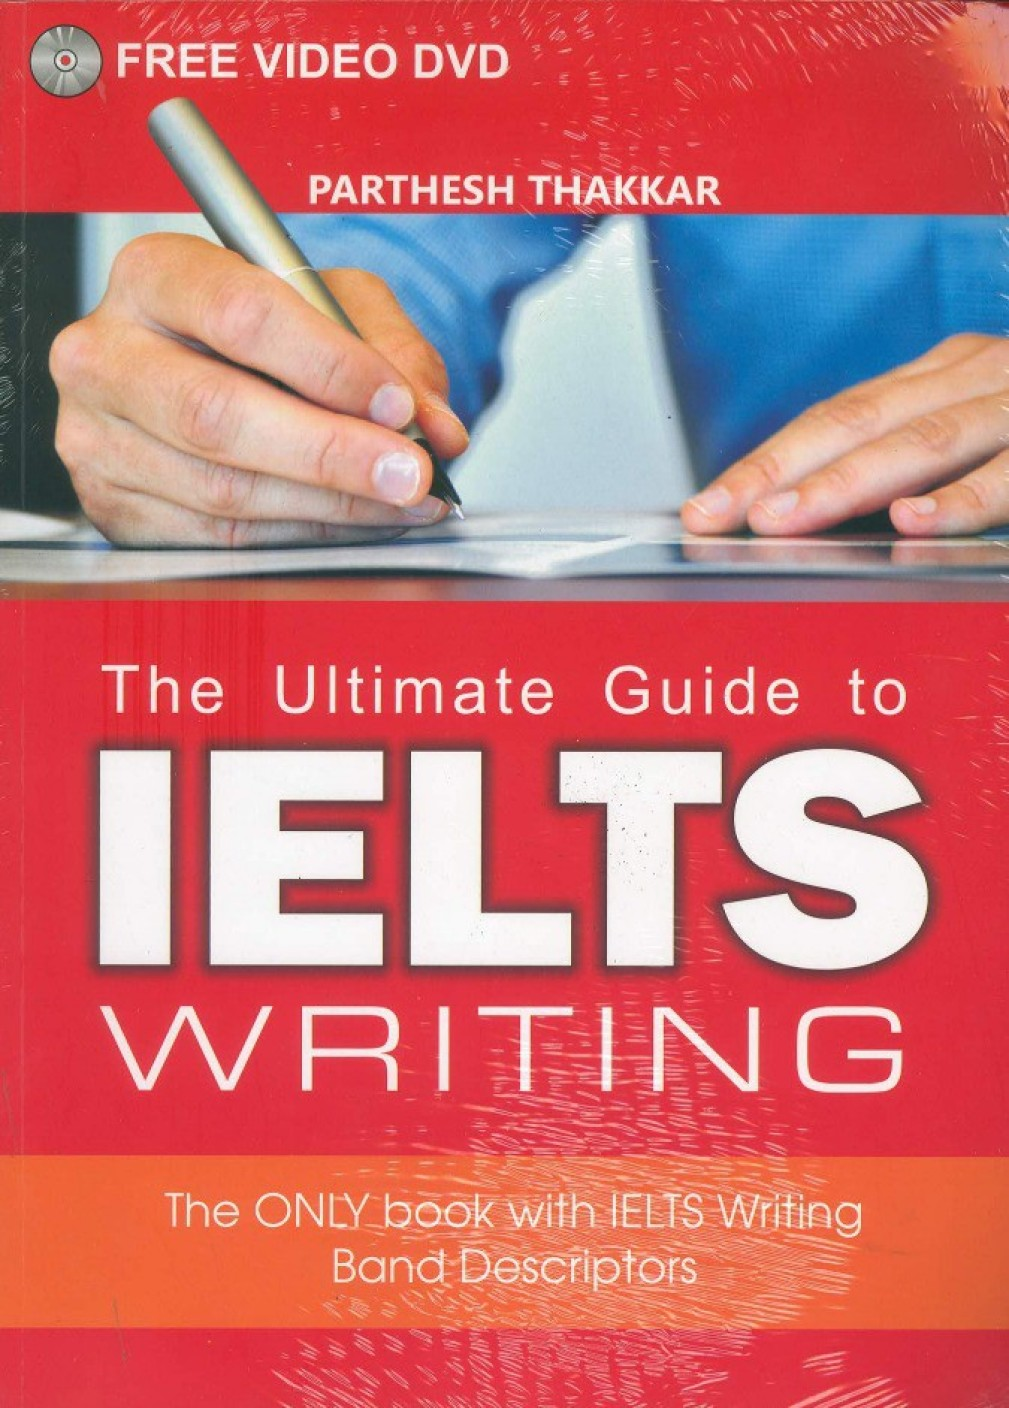 The Ultimate Guide To Ielts Speaking Parthesh Thakkar In Pdf Free